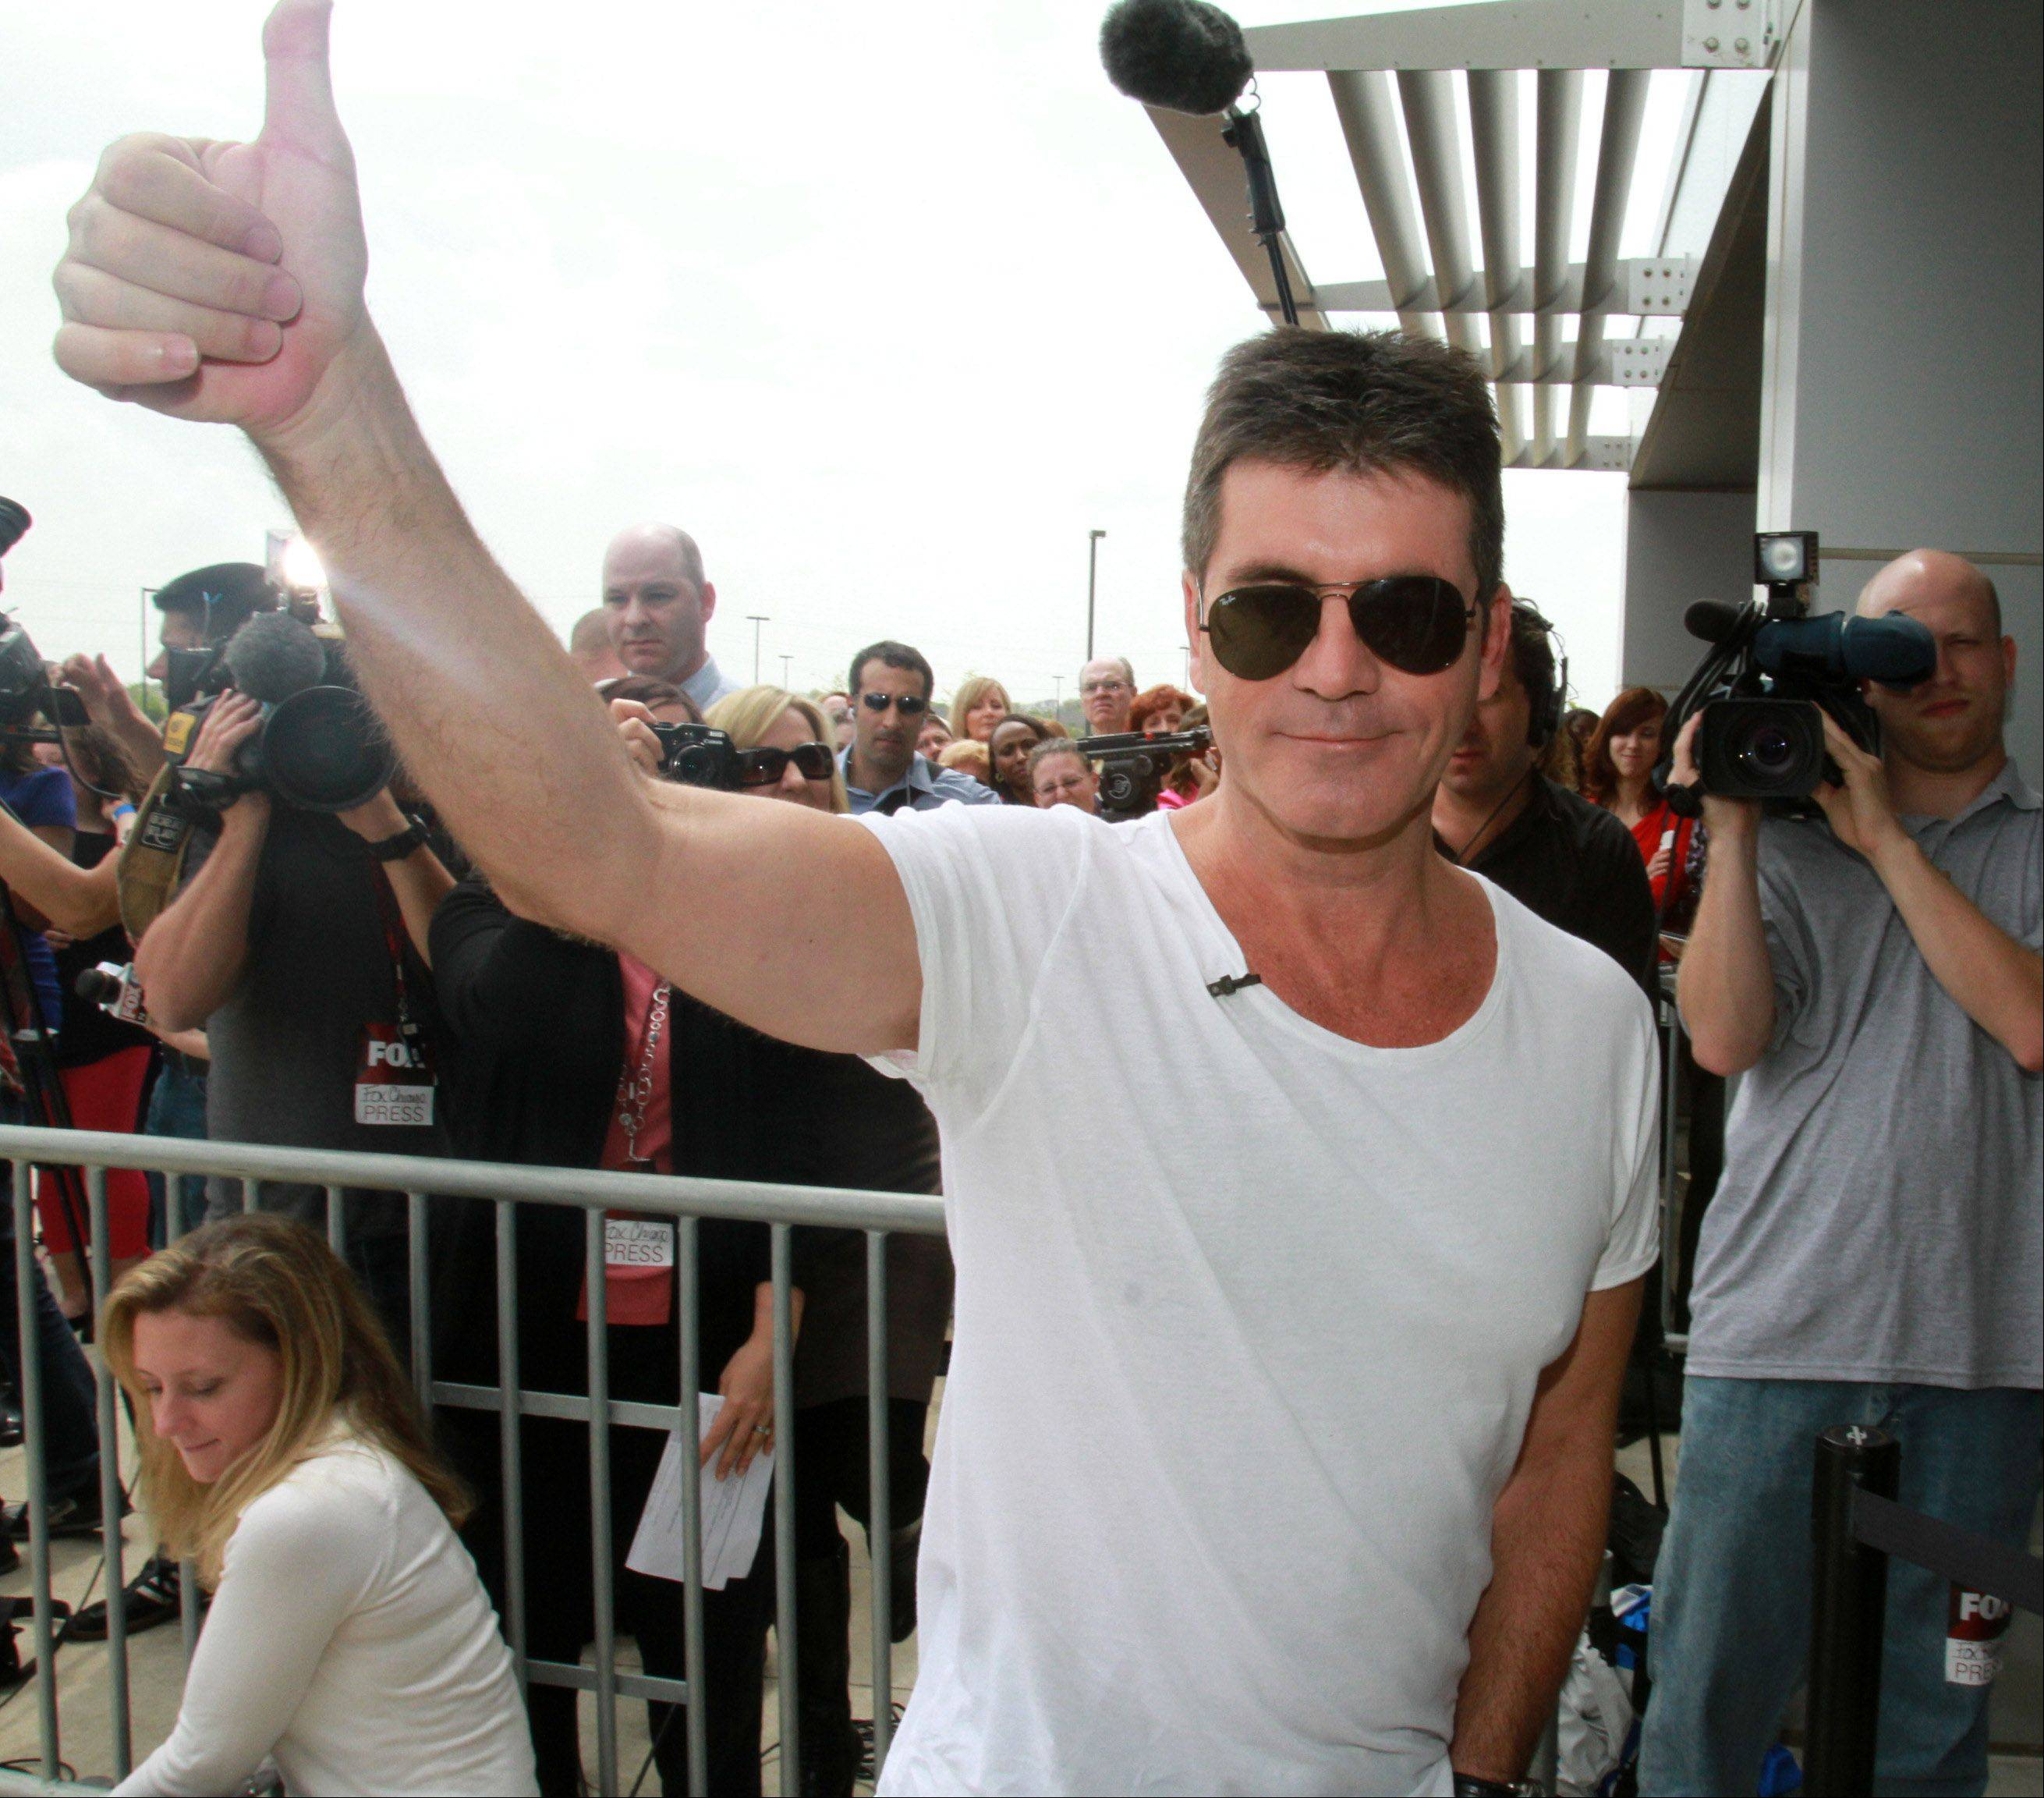 Simon Cowell give the thumbs-up as he arrives at the Sears Centre for taping of the judges round for The X Factor in Hoffman Estates on Thursday, May 19th.